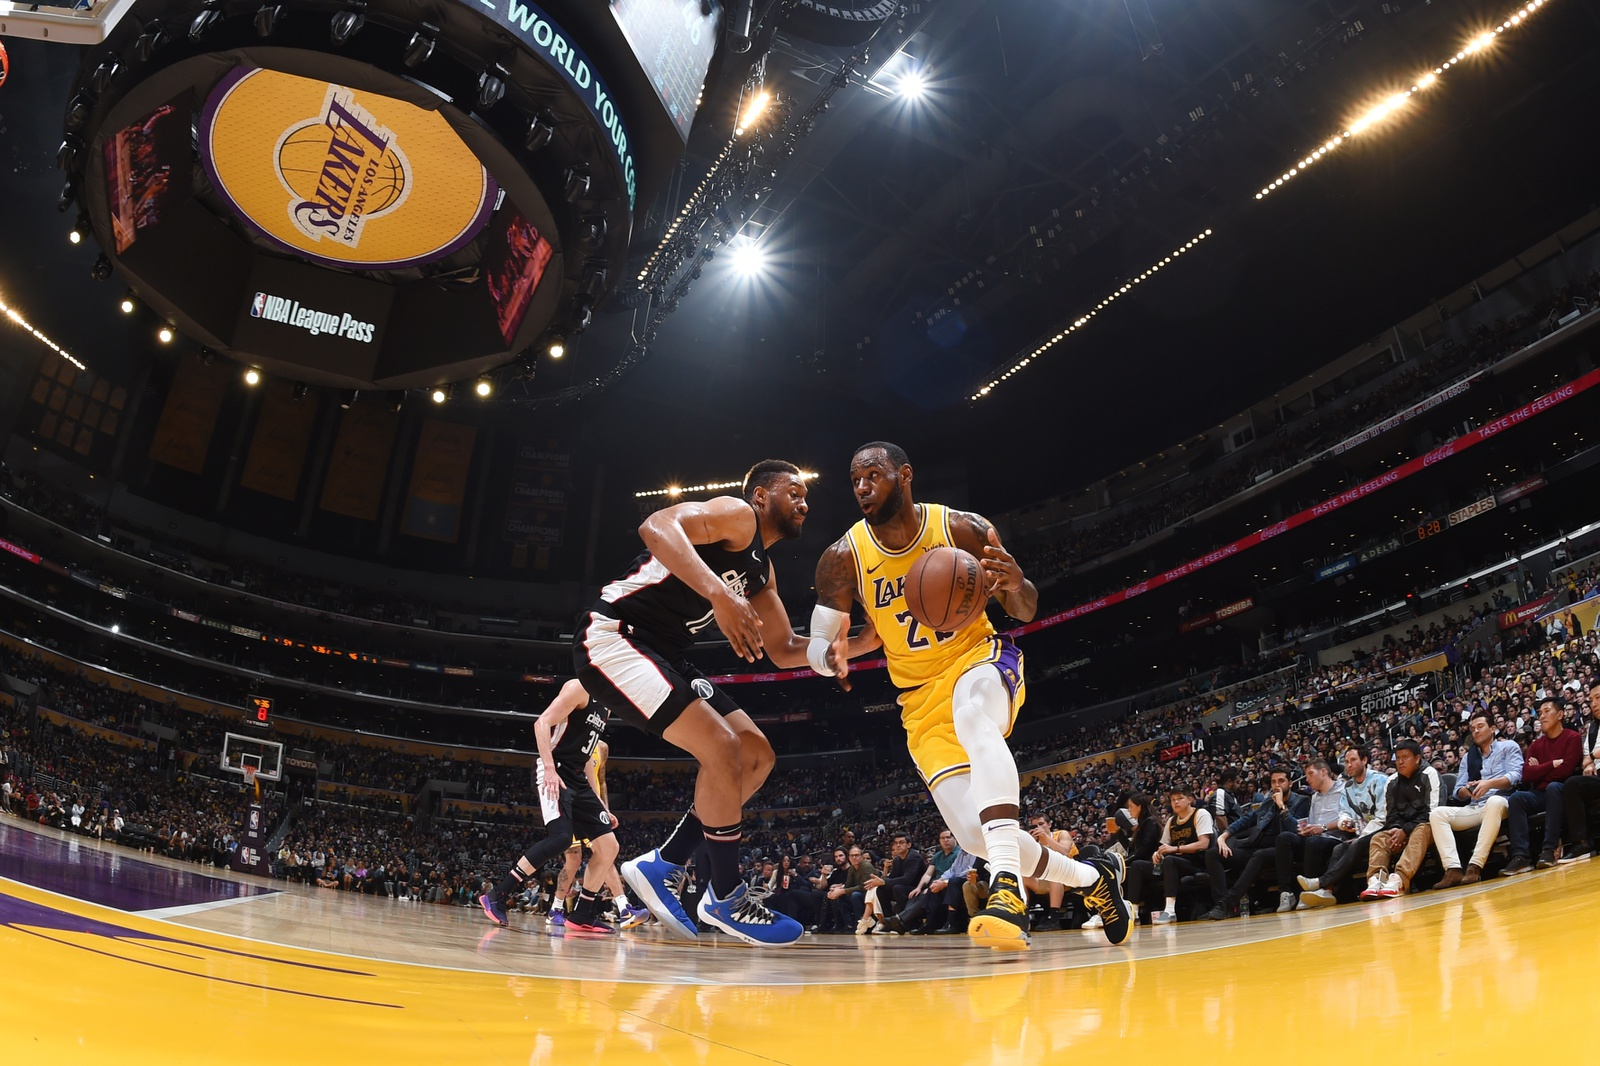 LeBron James #23 of the Los Angeles Lakers handles the ball against the Washington Wizards on March 26, 2019 at STAPLES Center in Los Angeles, California.